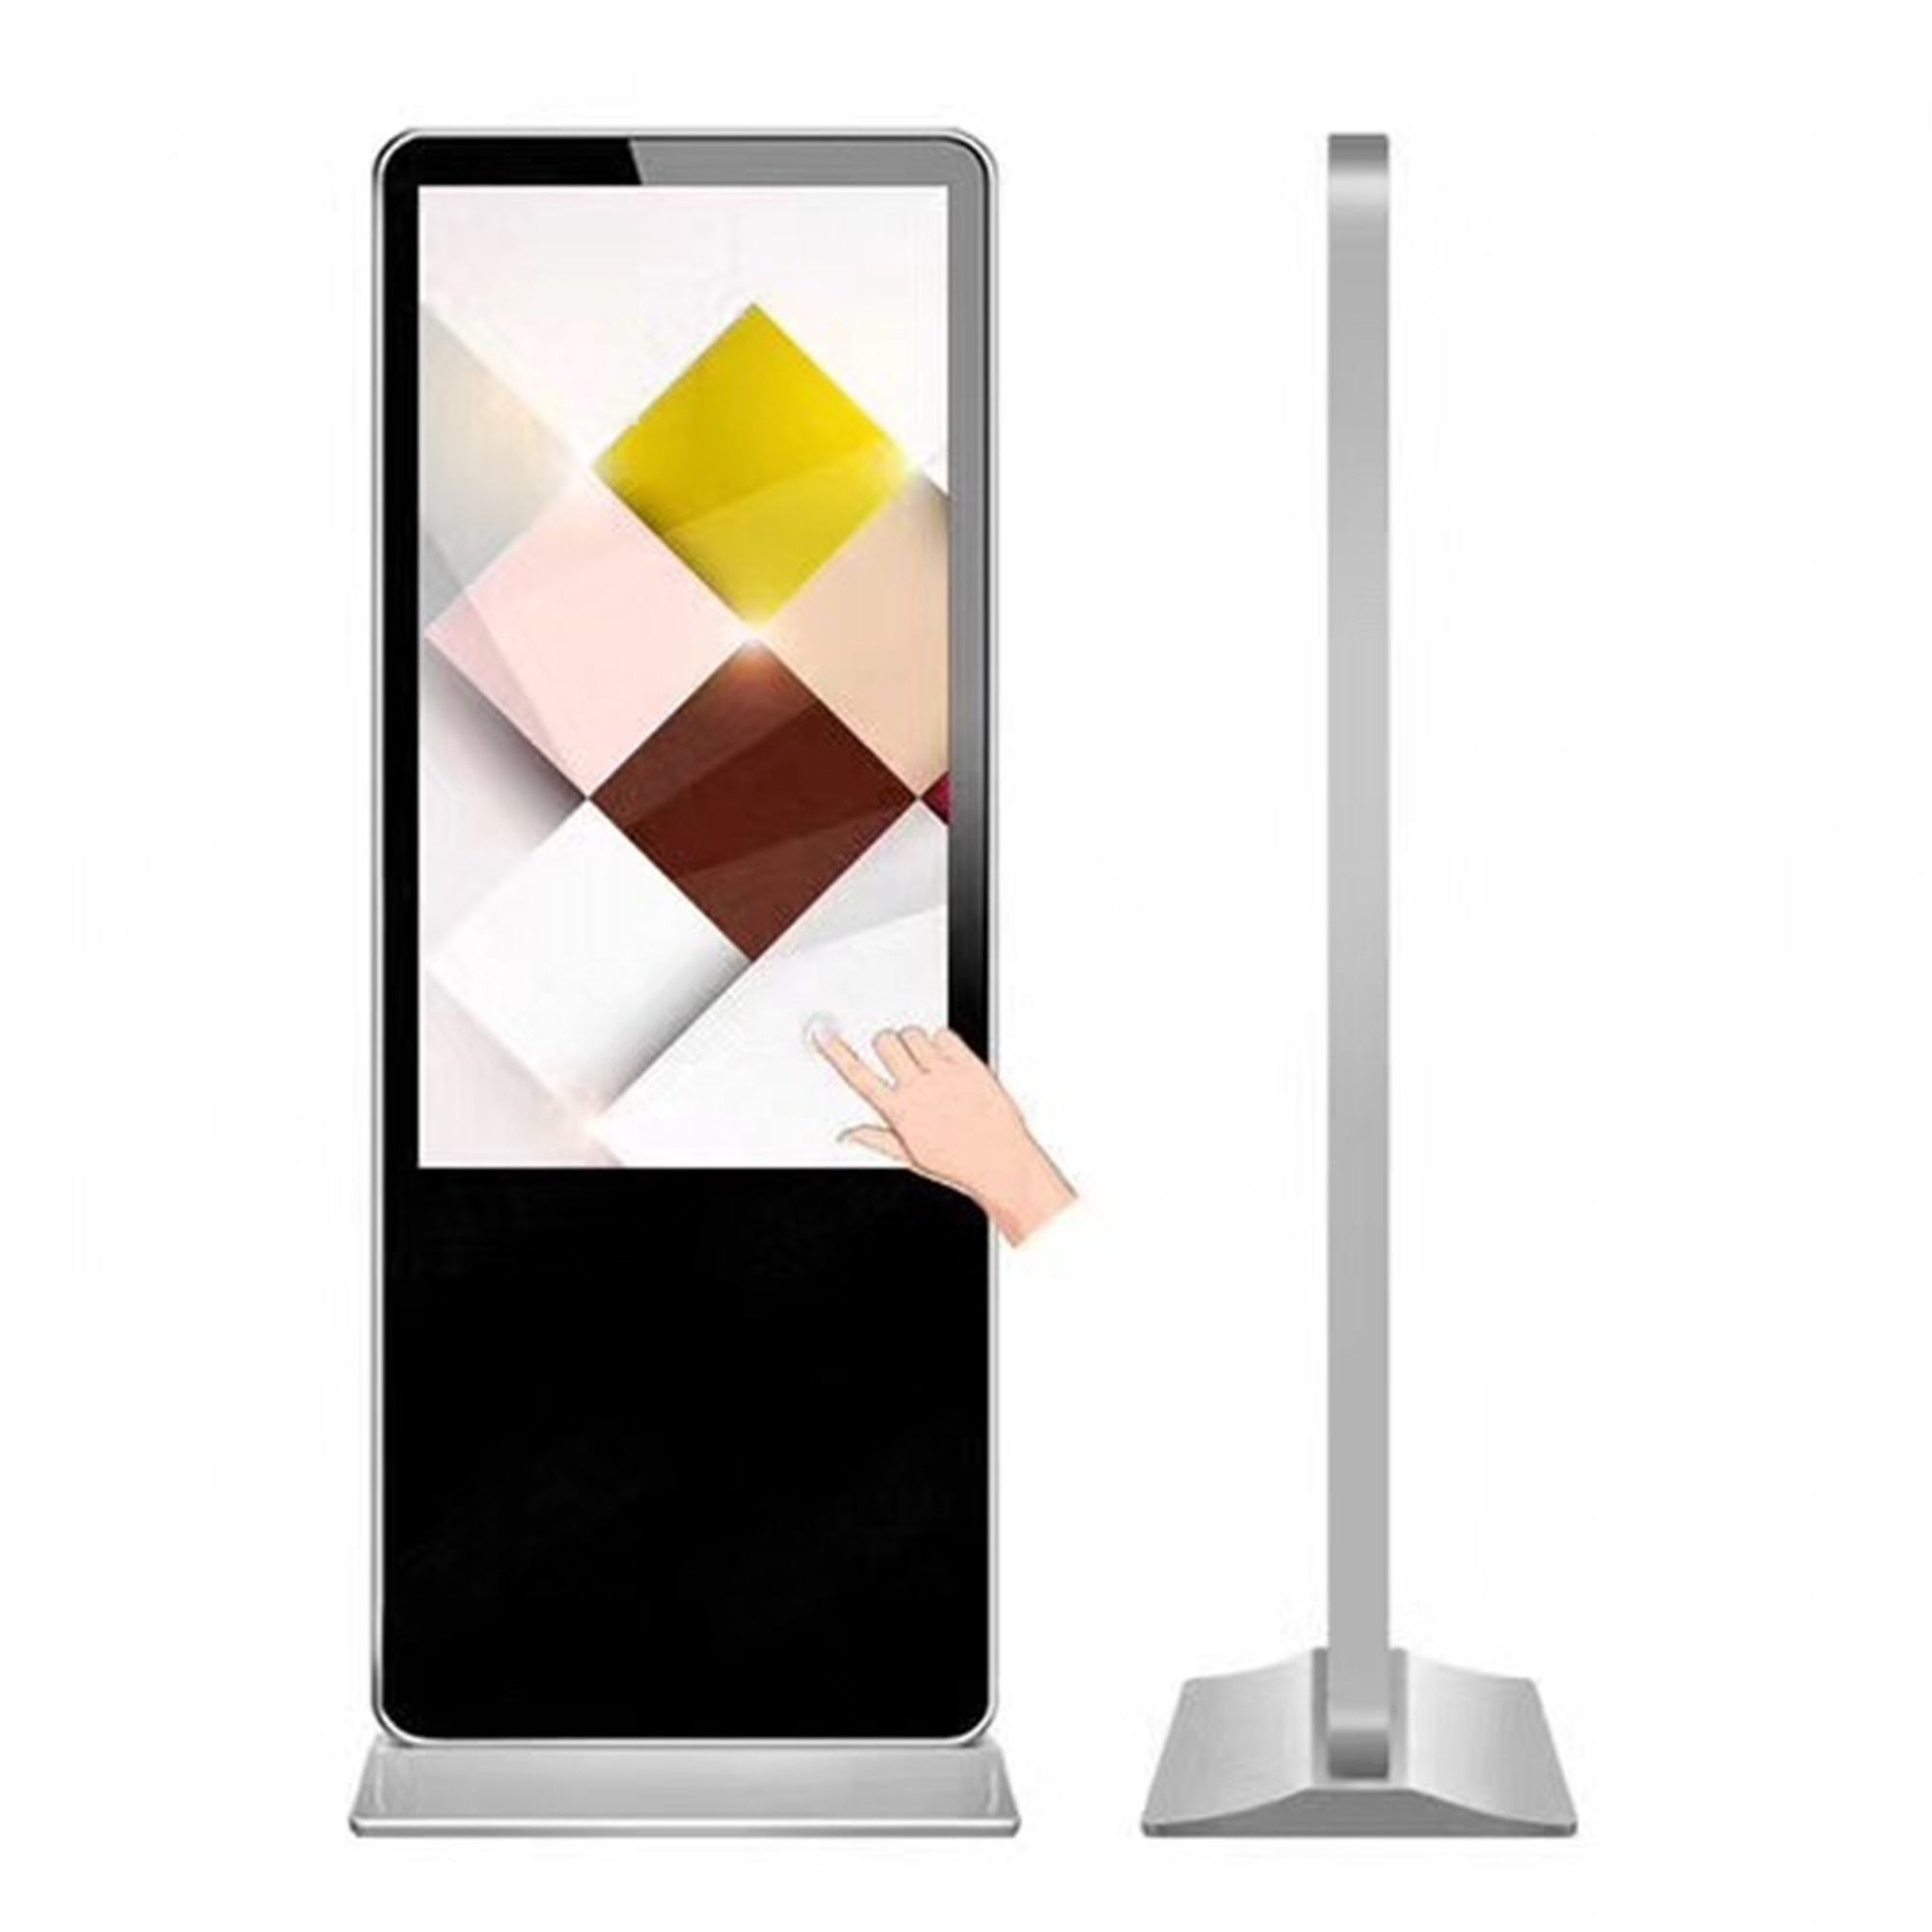 55inch digital signage software management player display stands